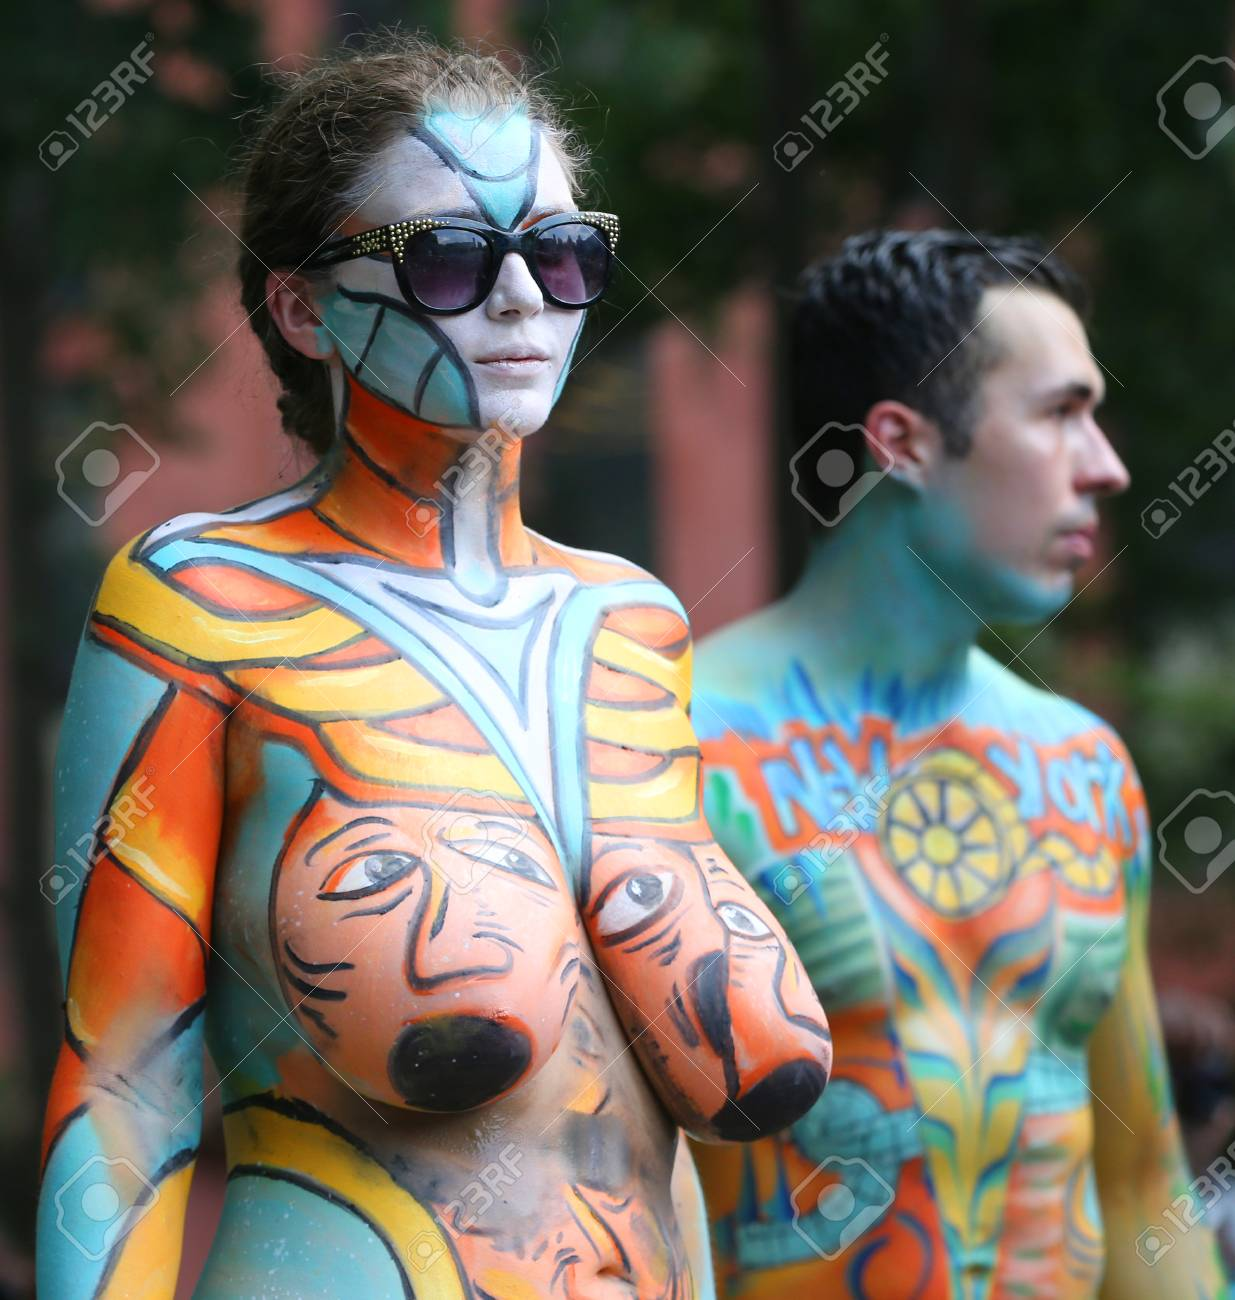 Nude body Painting foto 2